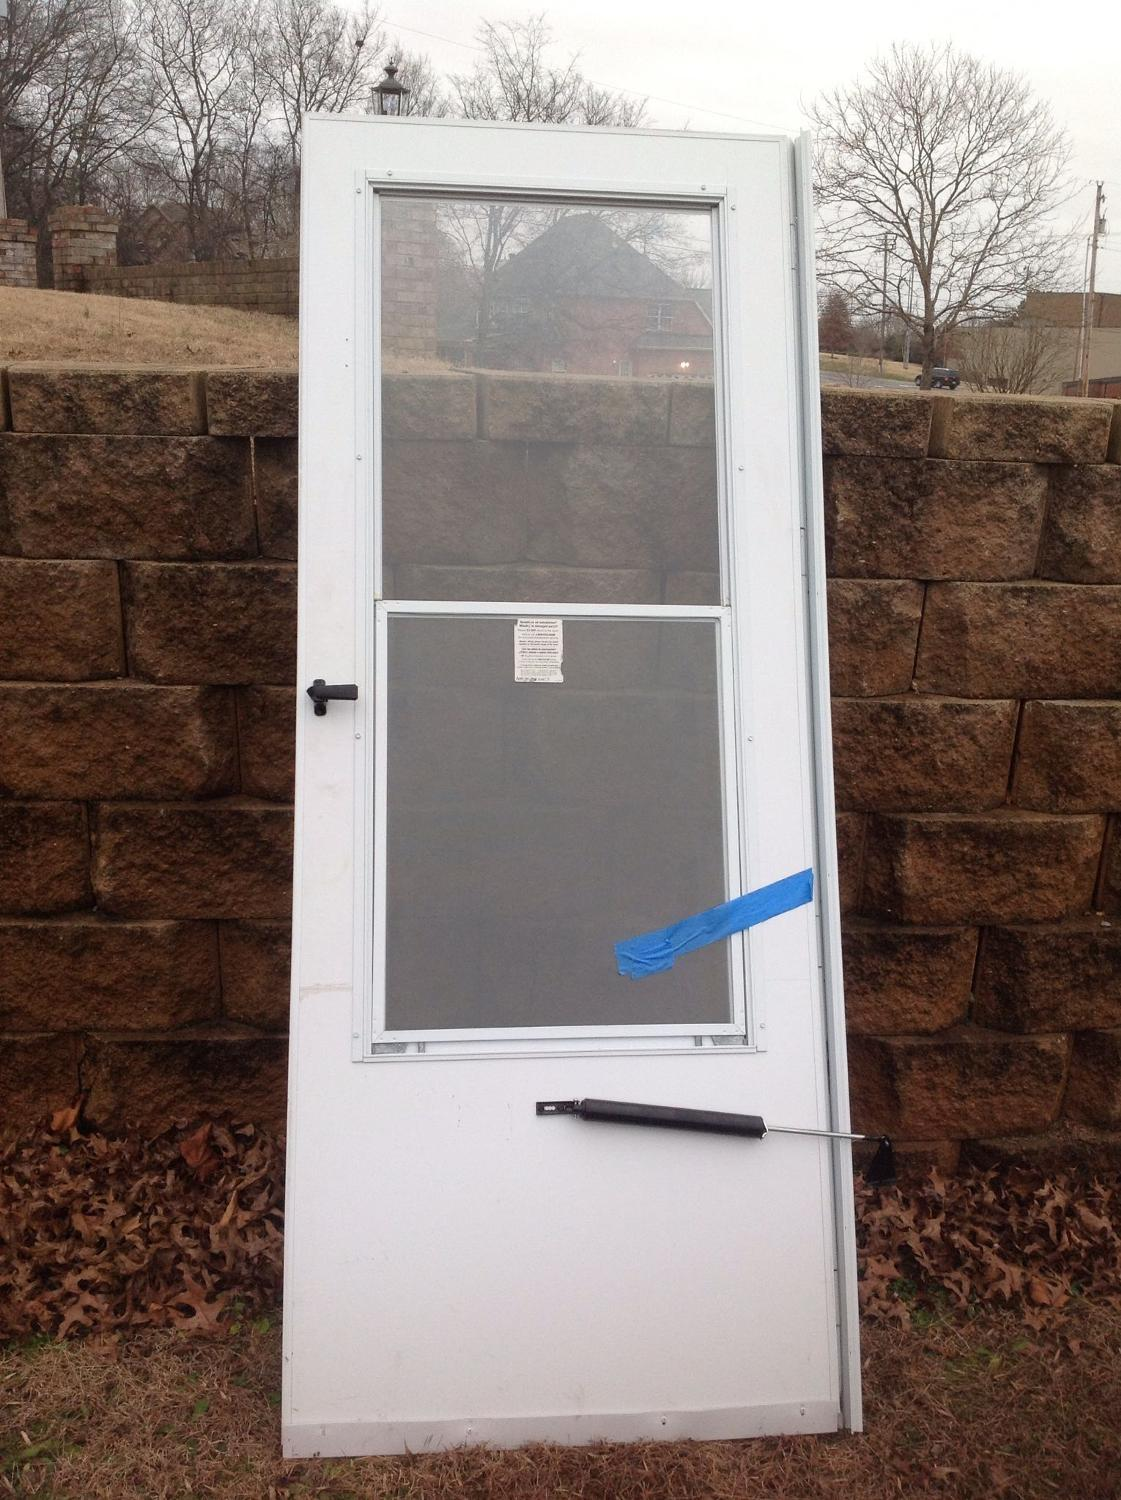 Find More Anderson Emco White Storm Door 30x80 In Excellent Used